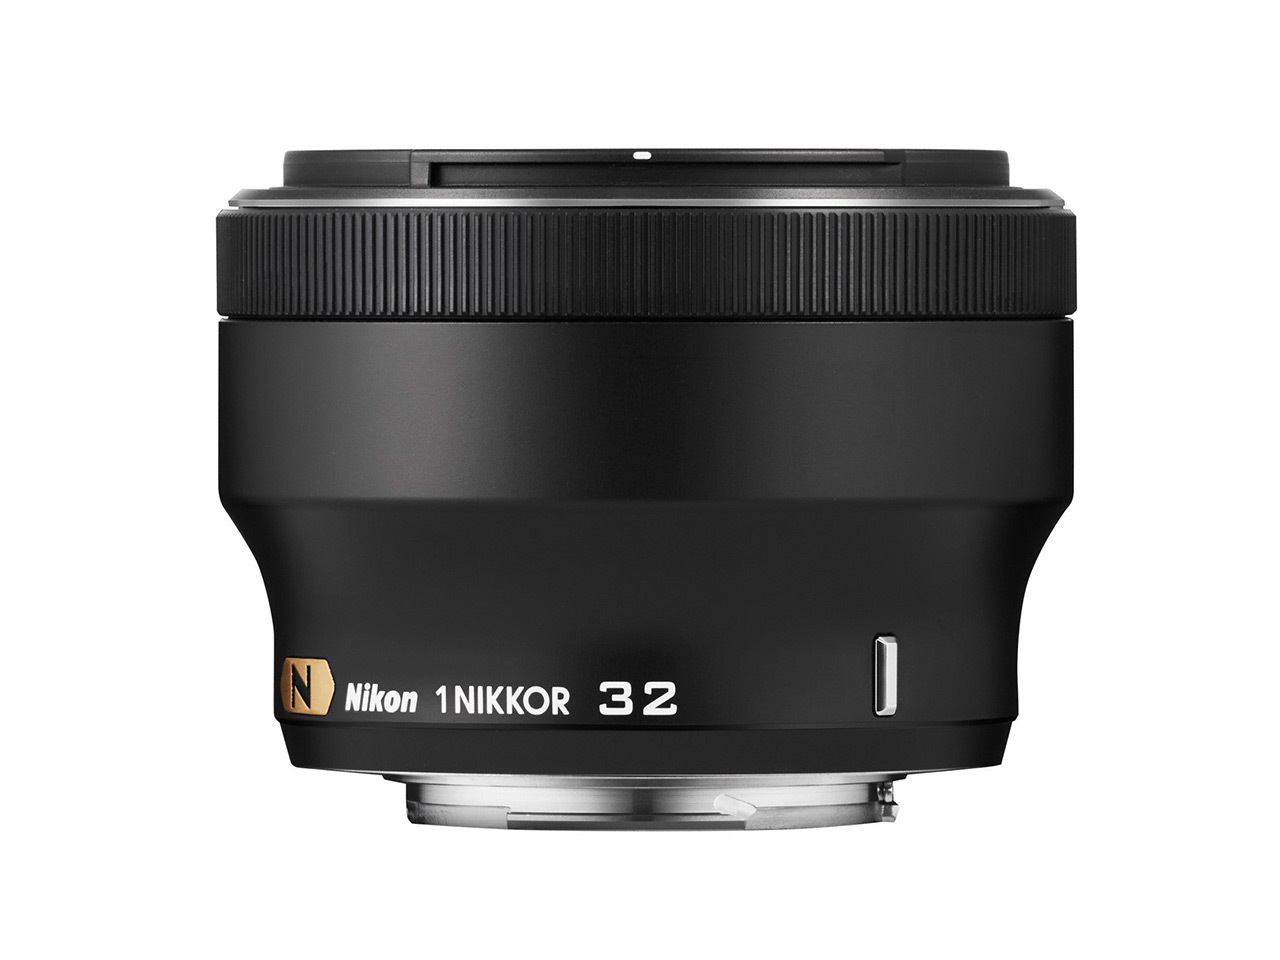 Nikon Introduces 1 Nikkor 32mm F 12 Portrait Lens For System Detailed Diagram Shows An Exploded View Of Nikons Iconic F3 Camera Additional Images